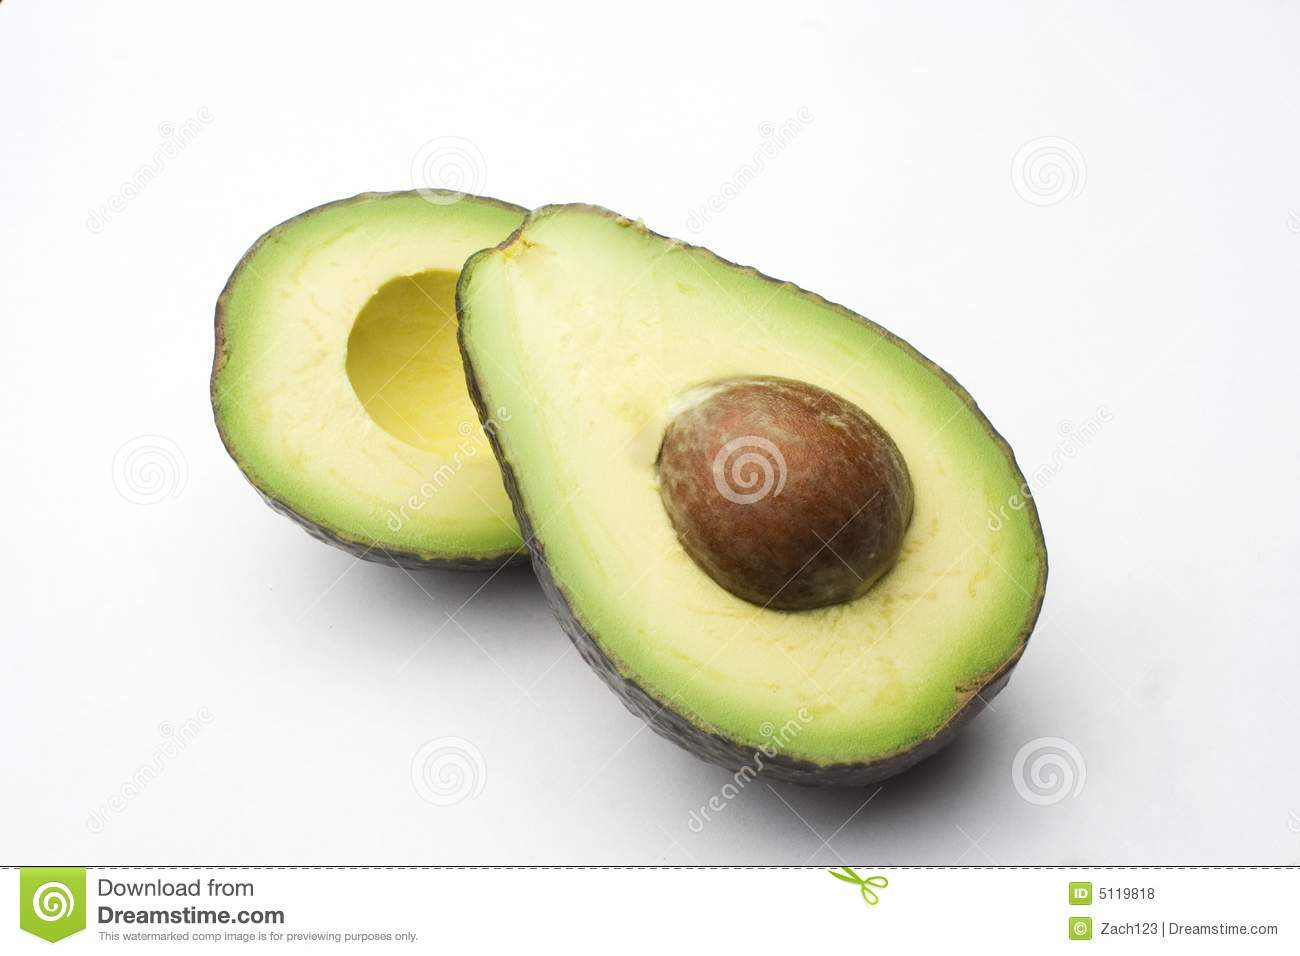 how to soften a cut avocado